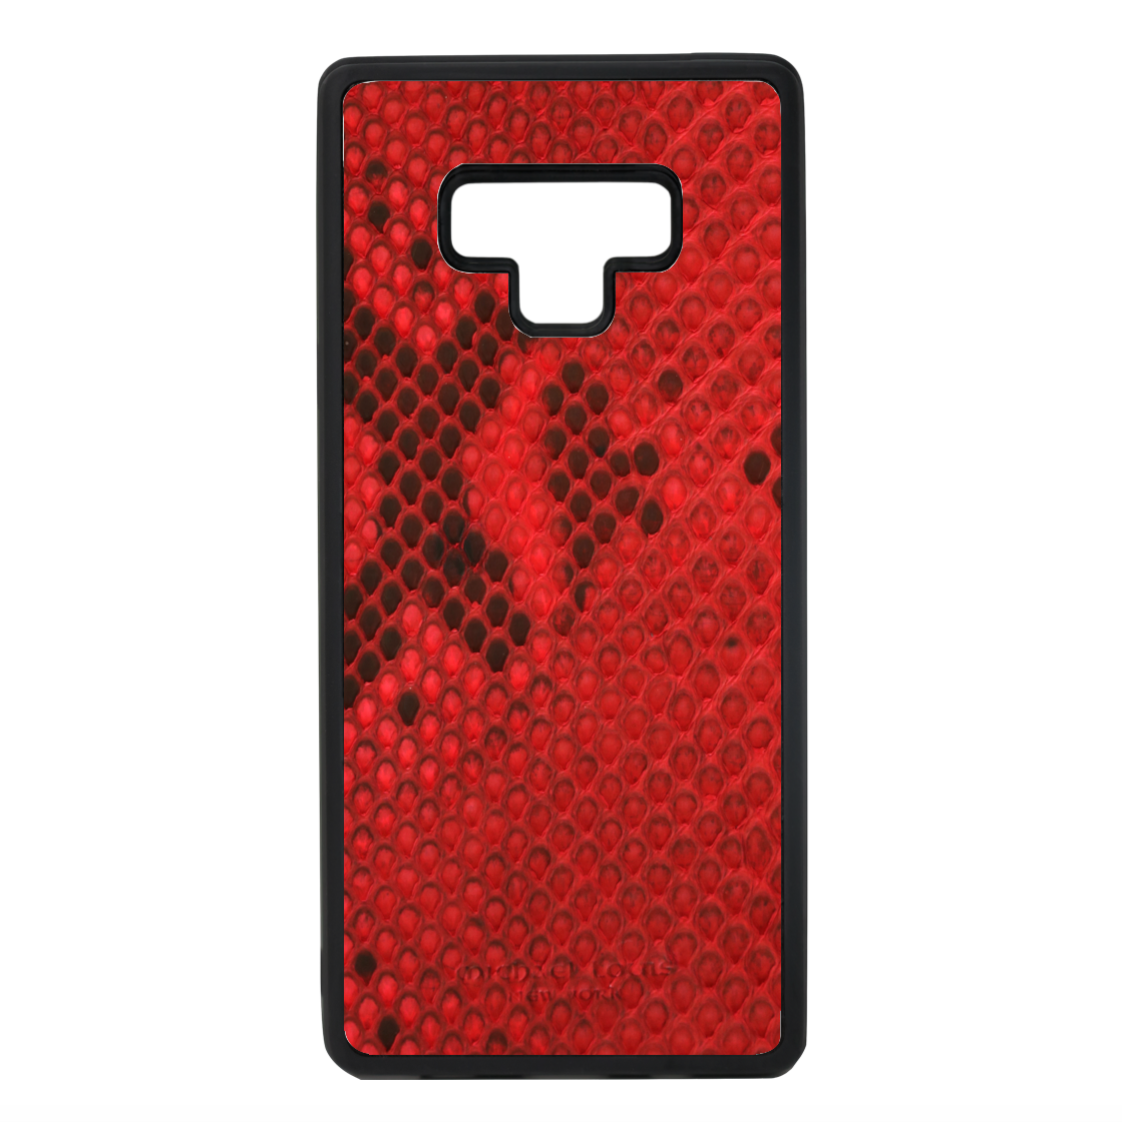 cheap for discount 64734 4071d Red Snakeskin Galaxy Note 9 Case